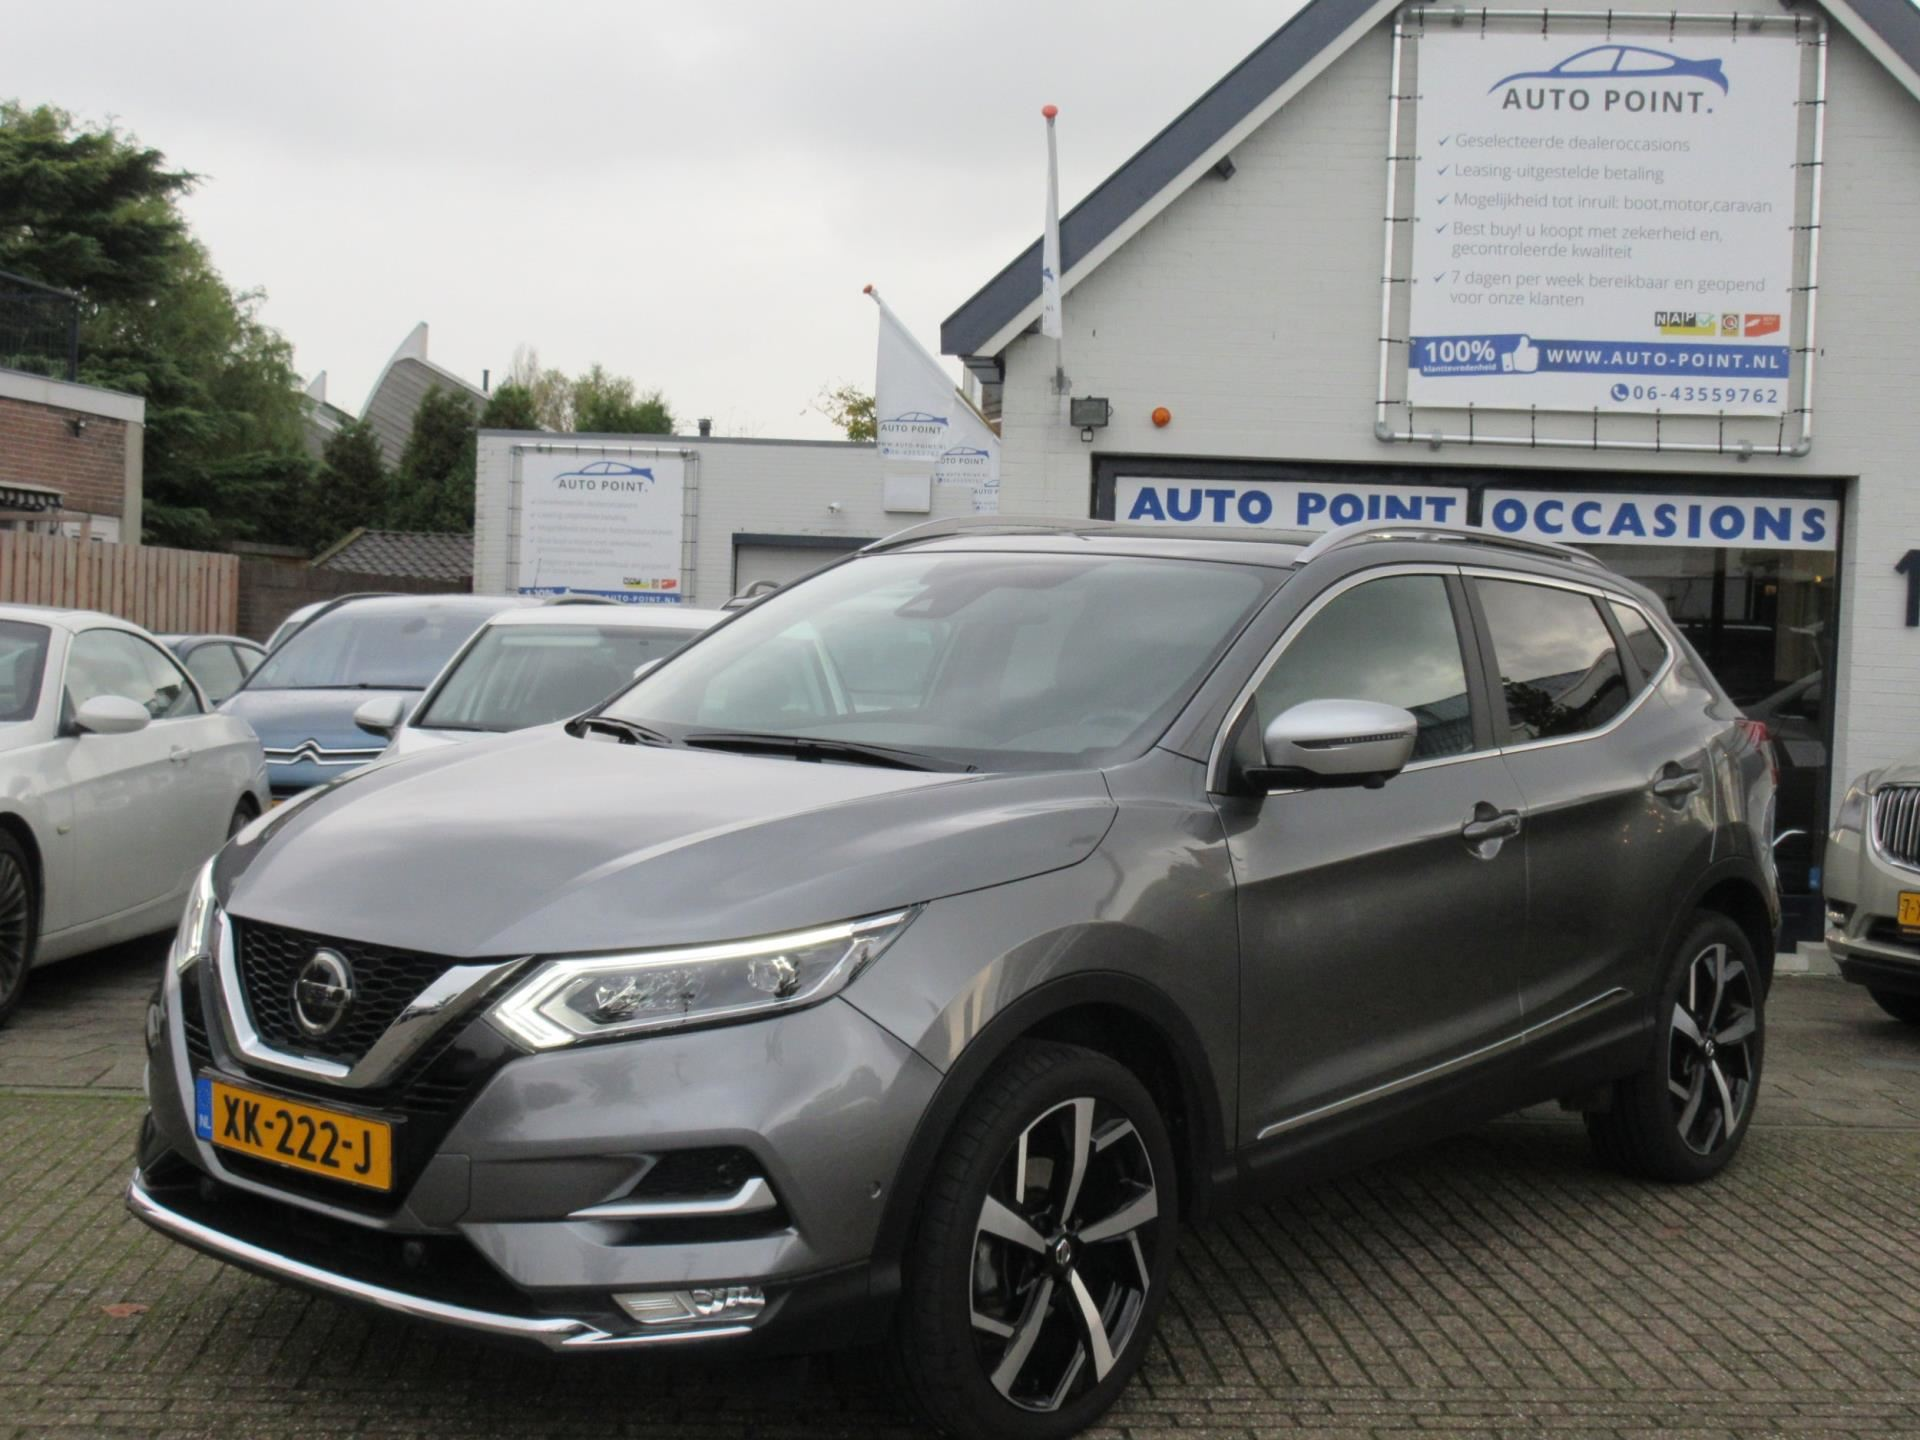 Nissan Qashqai occasion - Auto Point